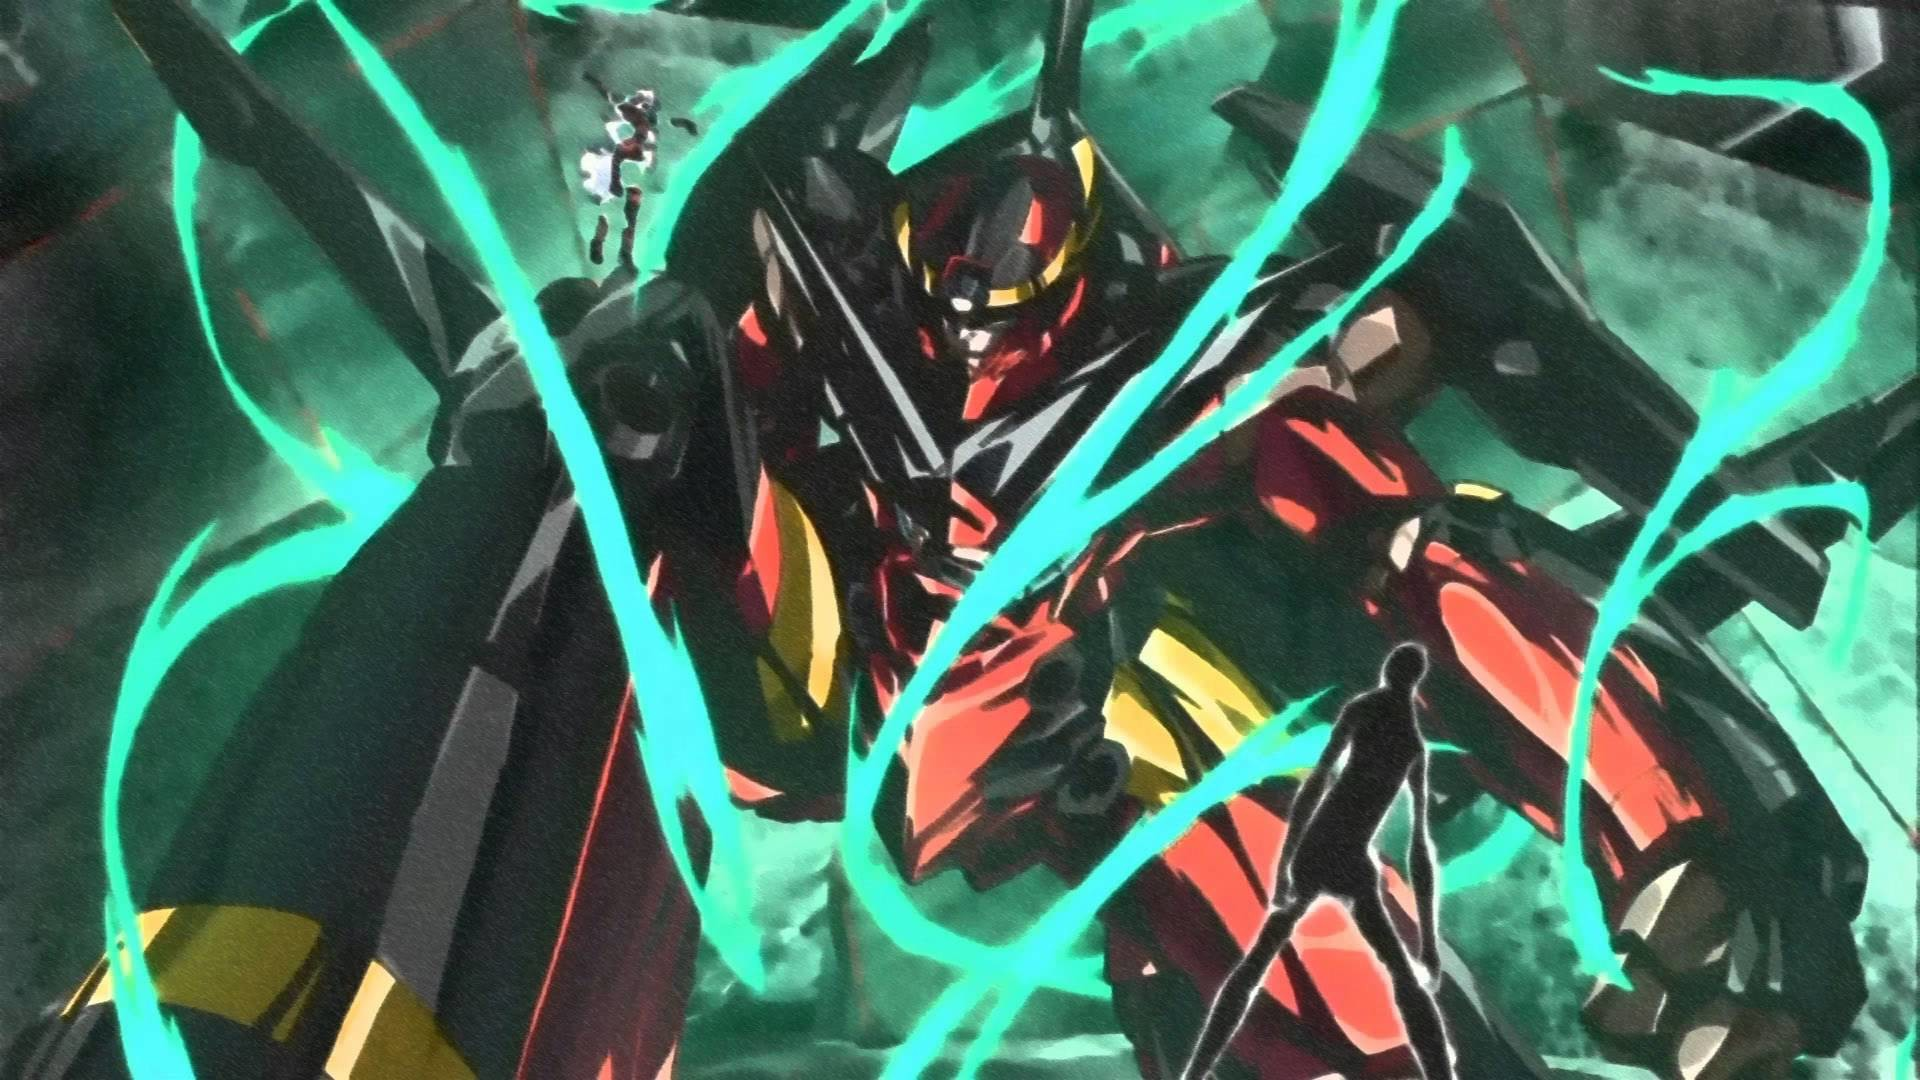 1920x1080 Gurren Lagann: With Your Drill, Pierce the Heavens Extended!! - YouTube